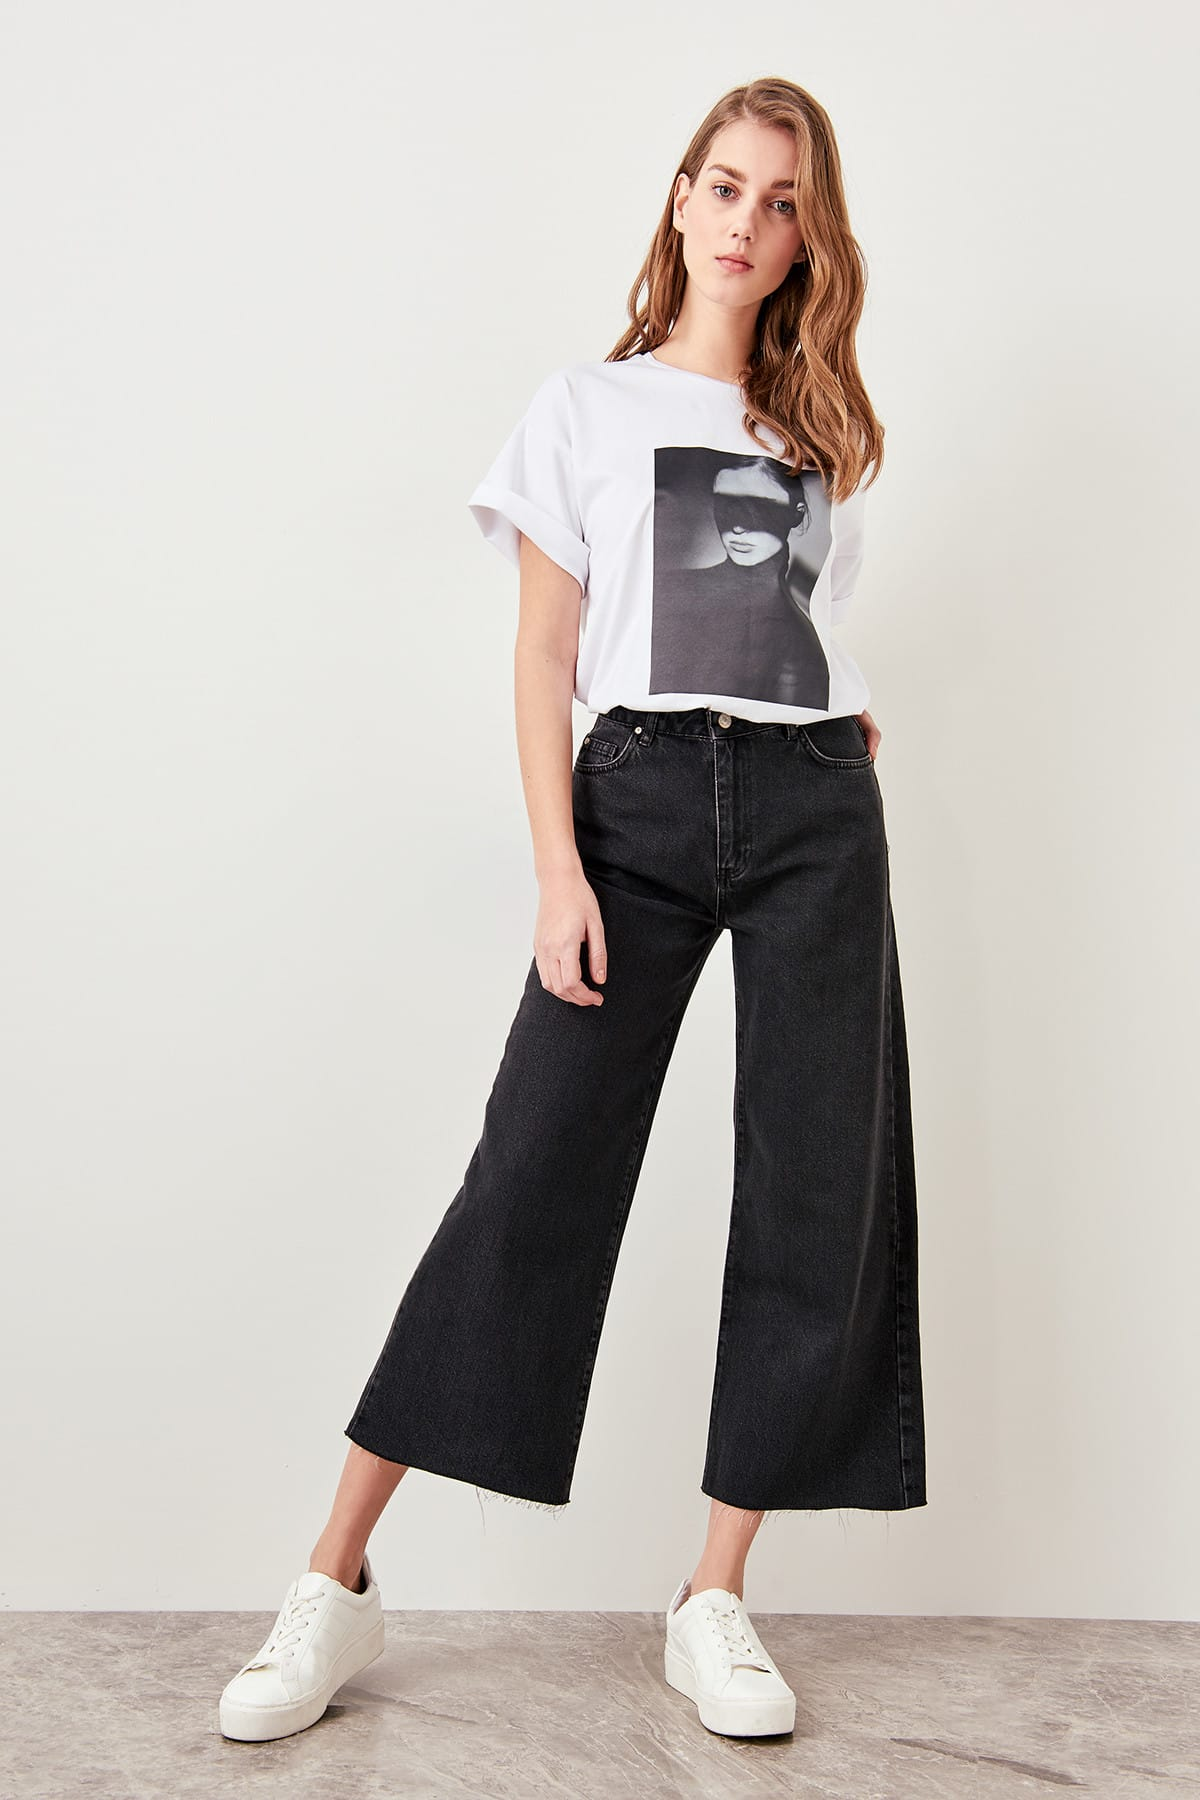 Trendyol Black High Waist Wide Leg Jeans Discrete Part